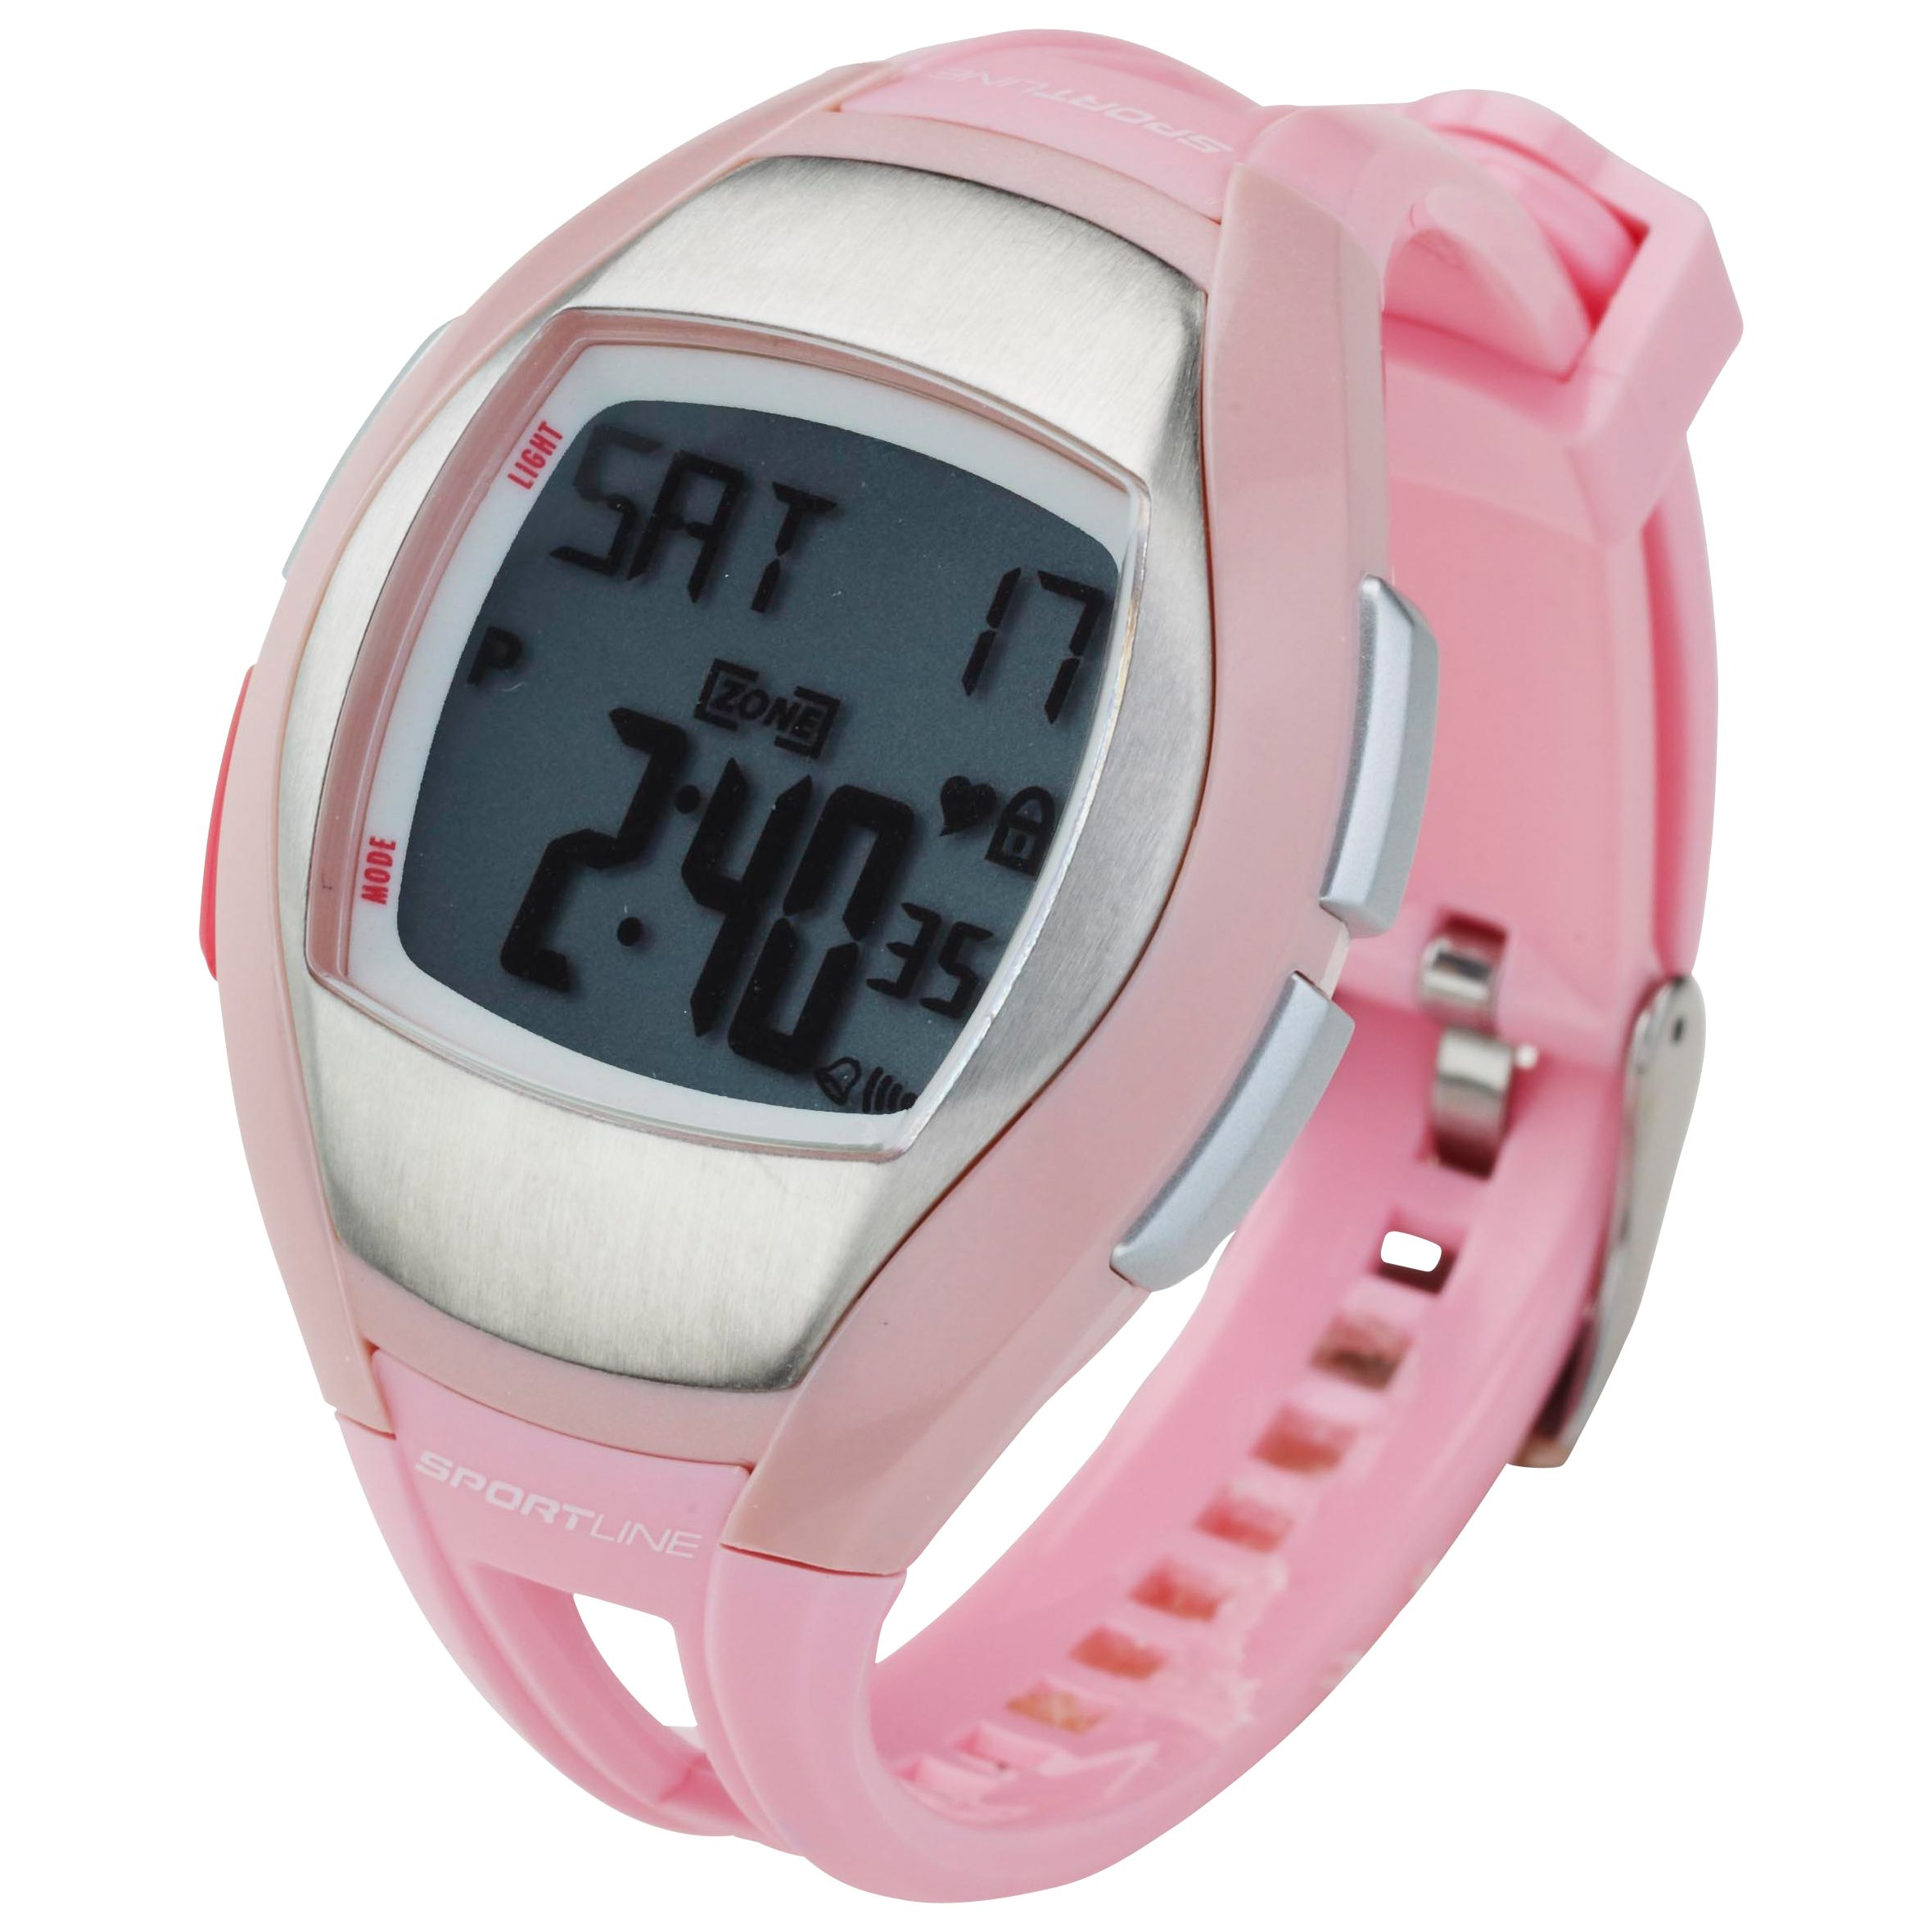 Sportline Solo 925 Heart Rate Watch, Pink